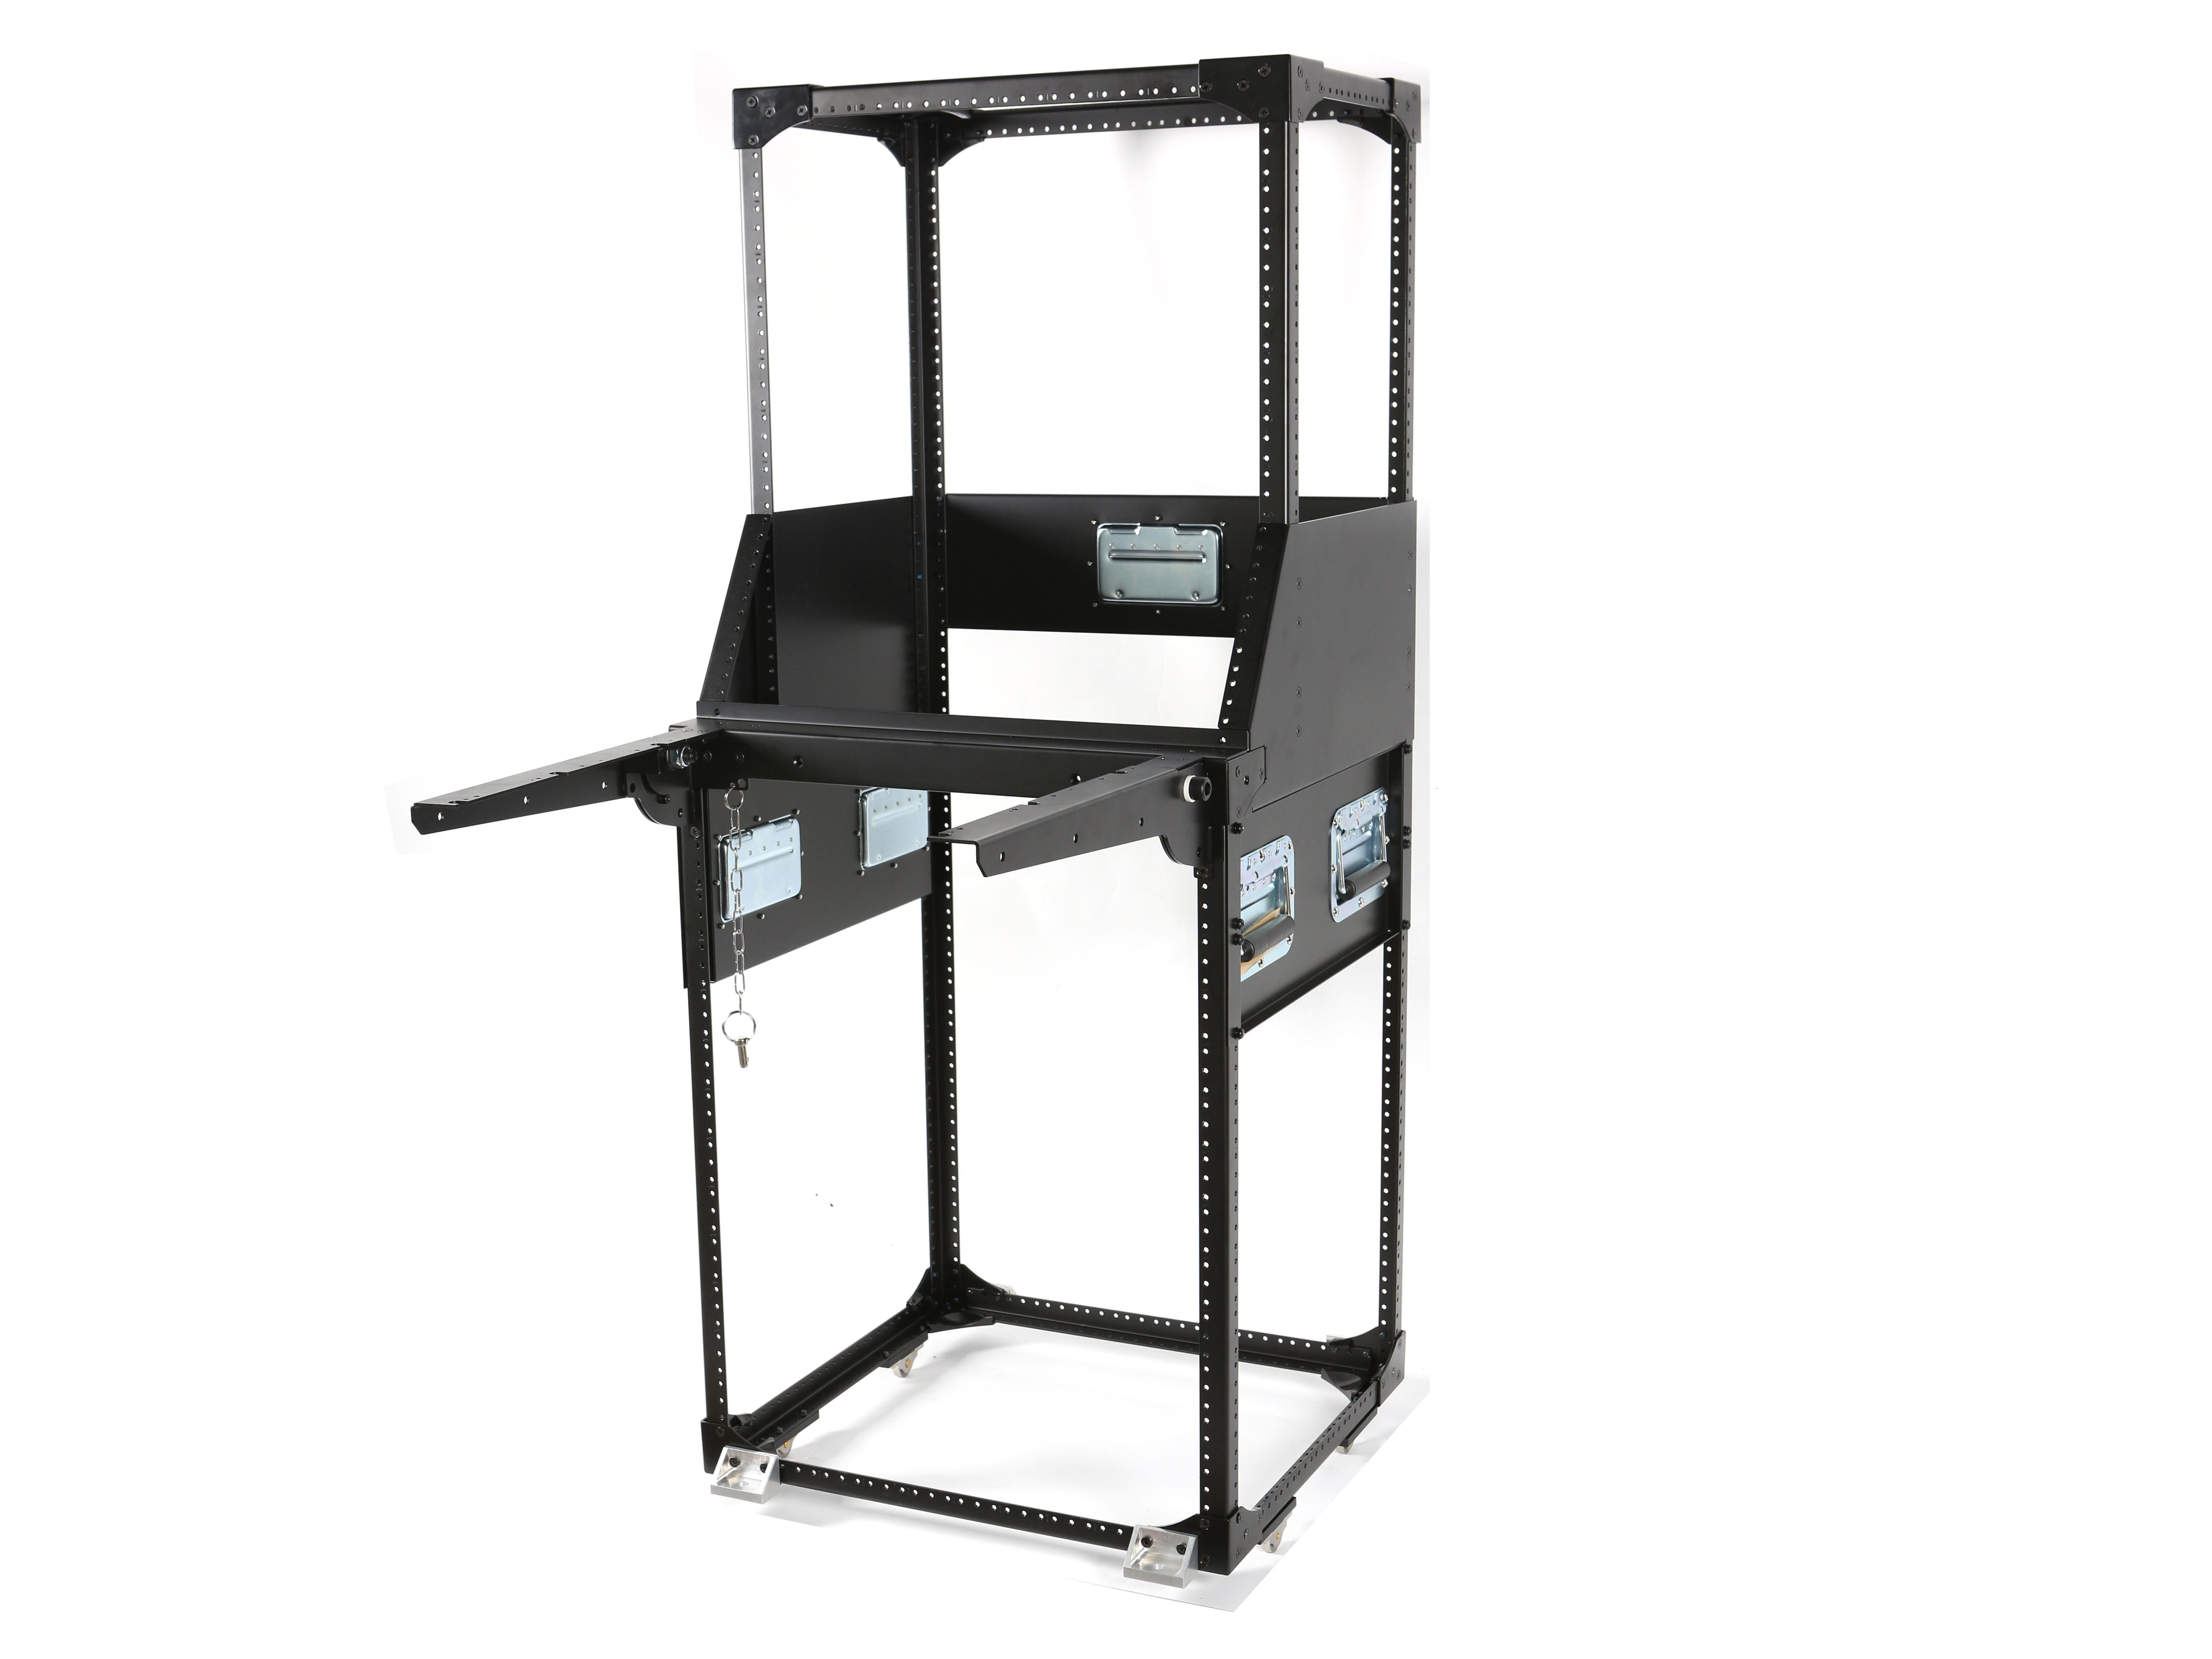 OBV Rack 19 inch Mobile Rack System by Datavideo